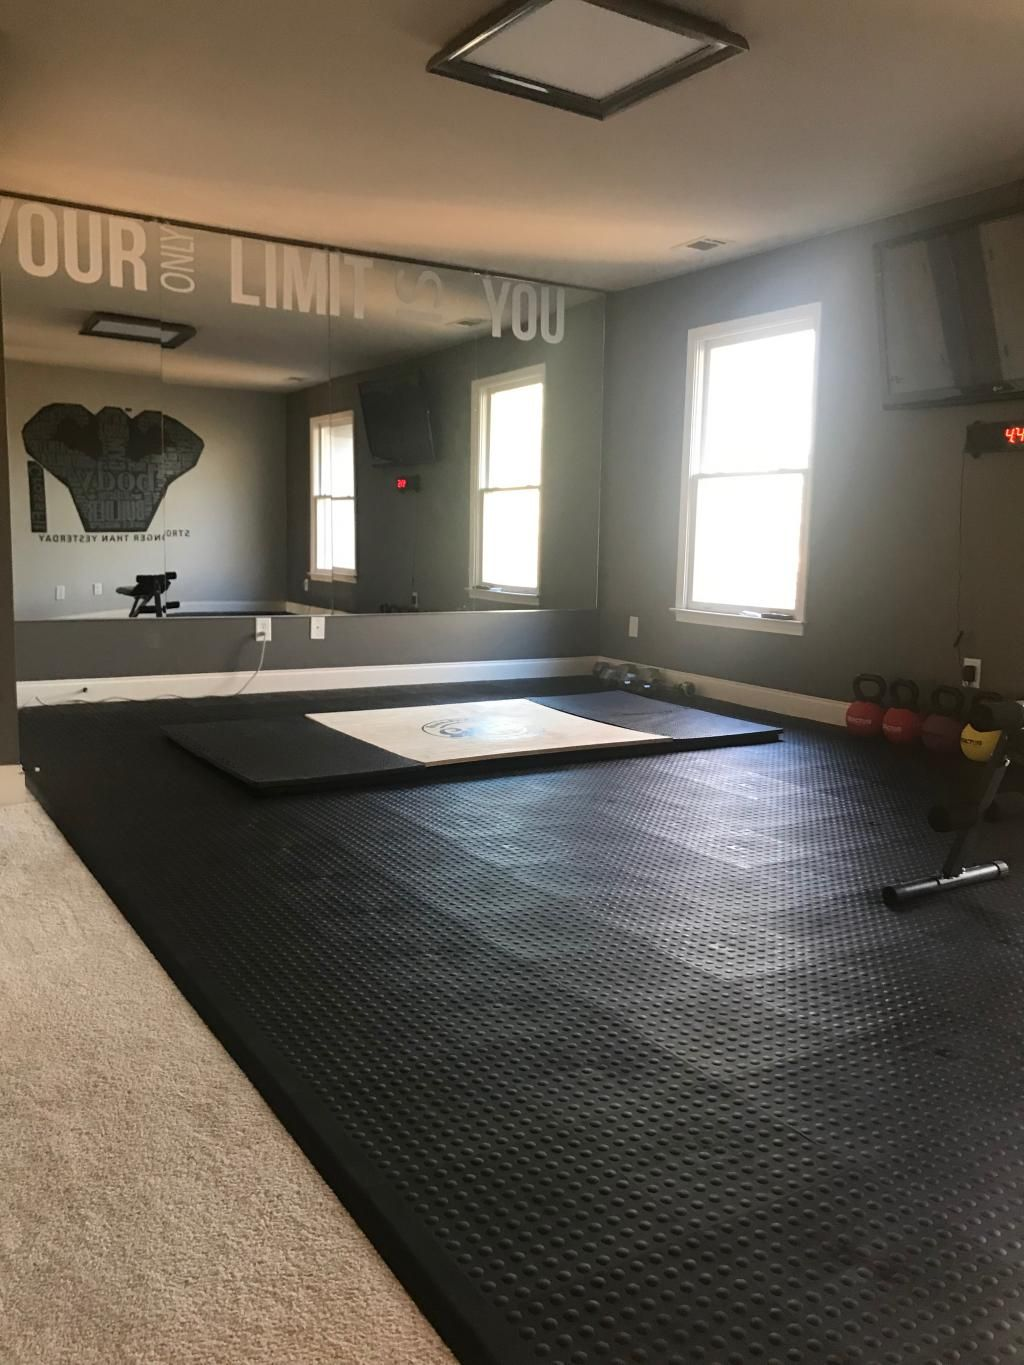 Staylock Tile Bump Top Black Home Gym Flooring Gym Room At Home